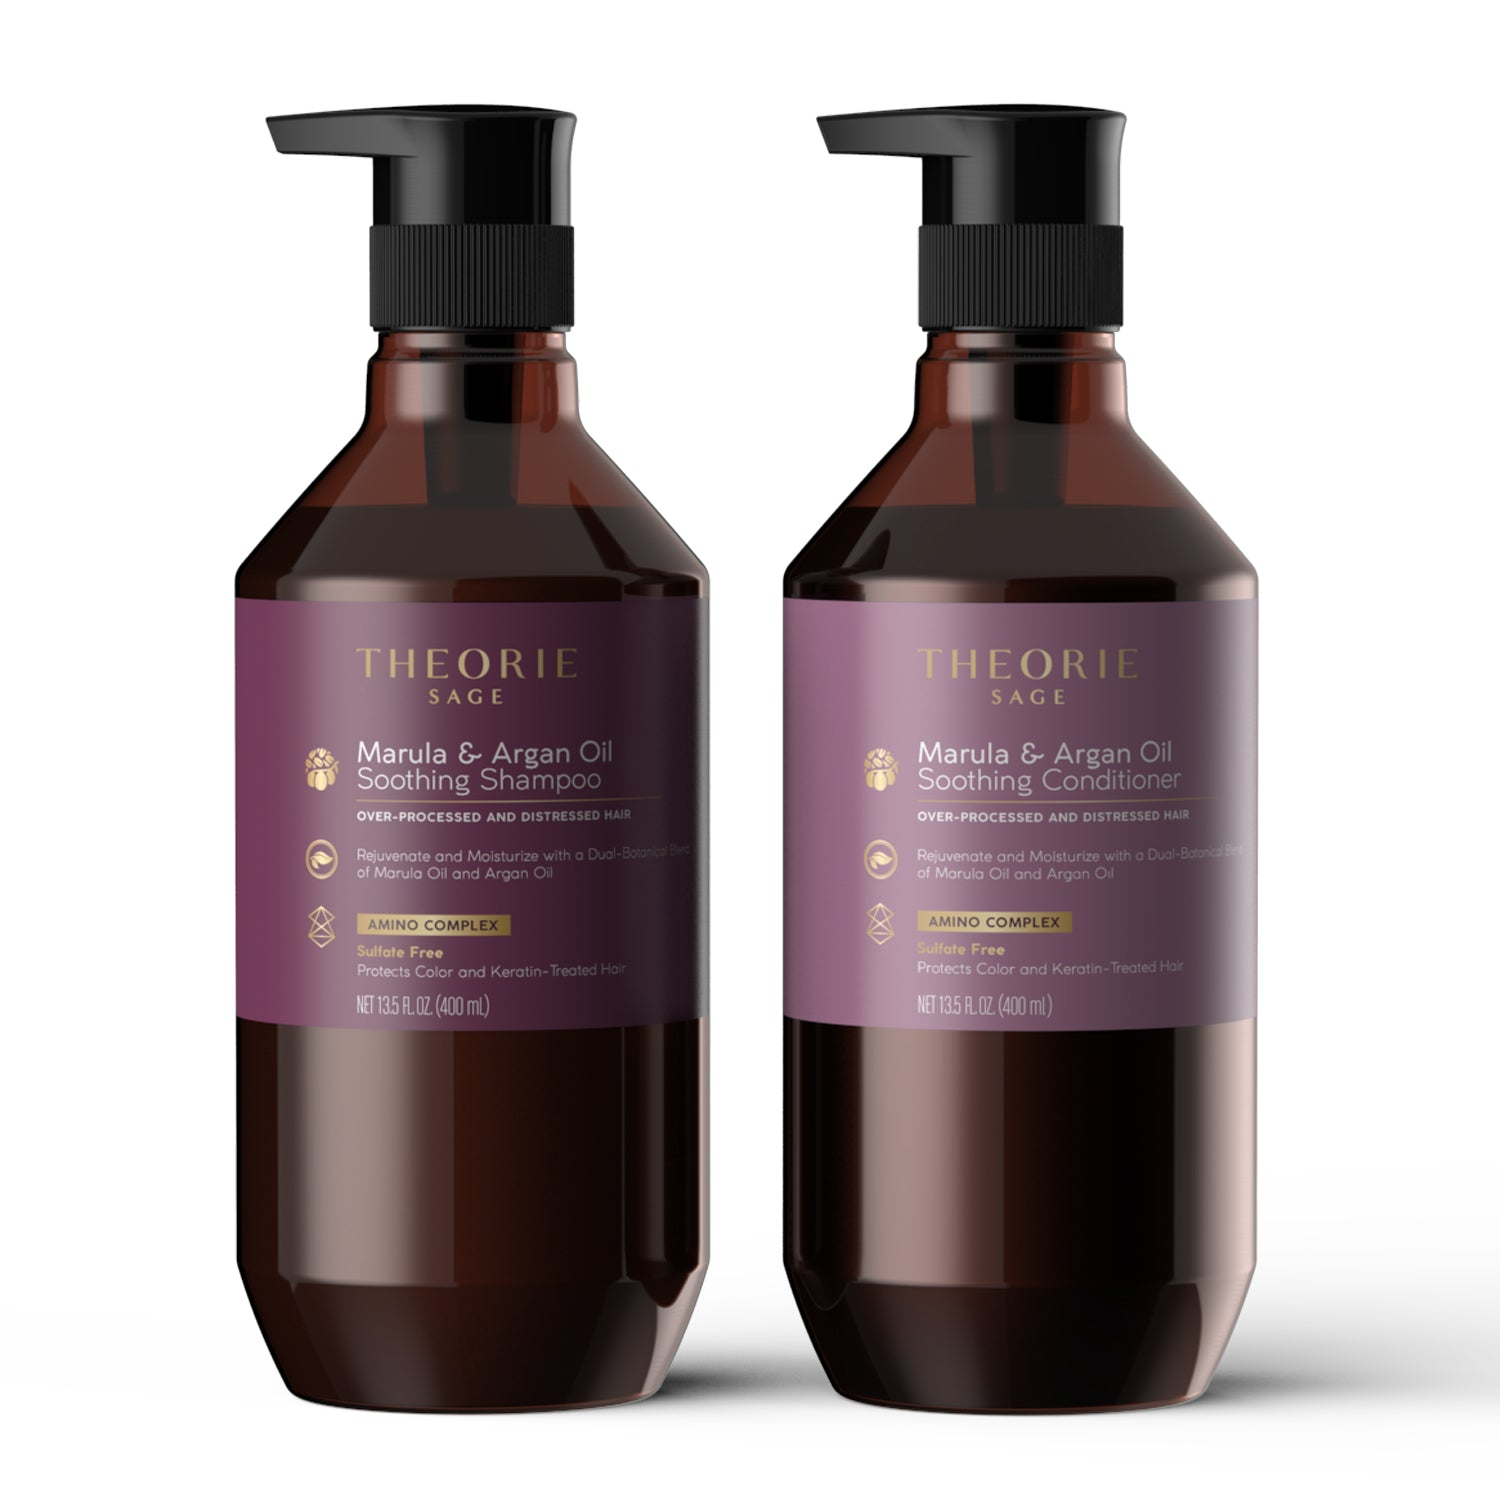 Theorie: Sage -  Marula & Argan Oil Smoothing Shampoo & Condition Set (Sulfate-free)